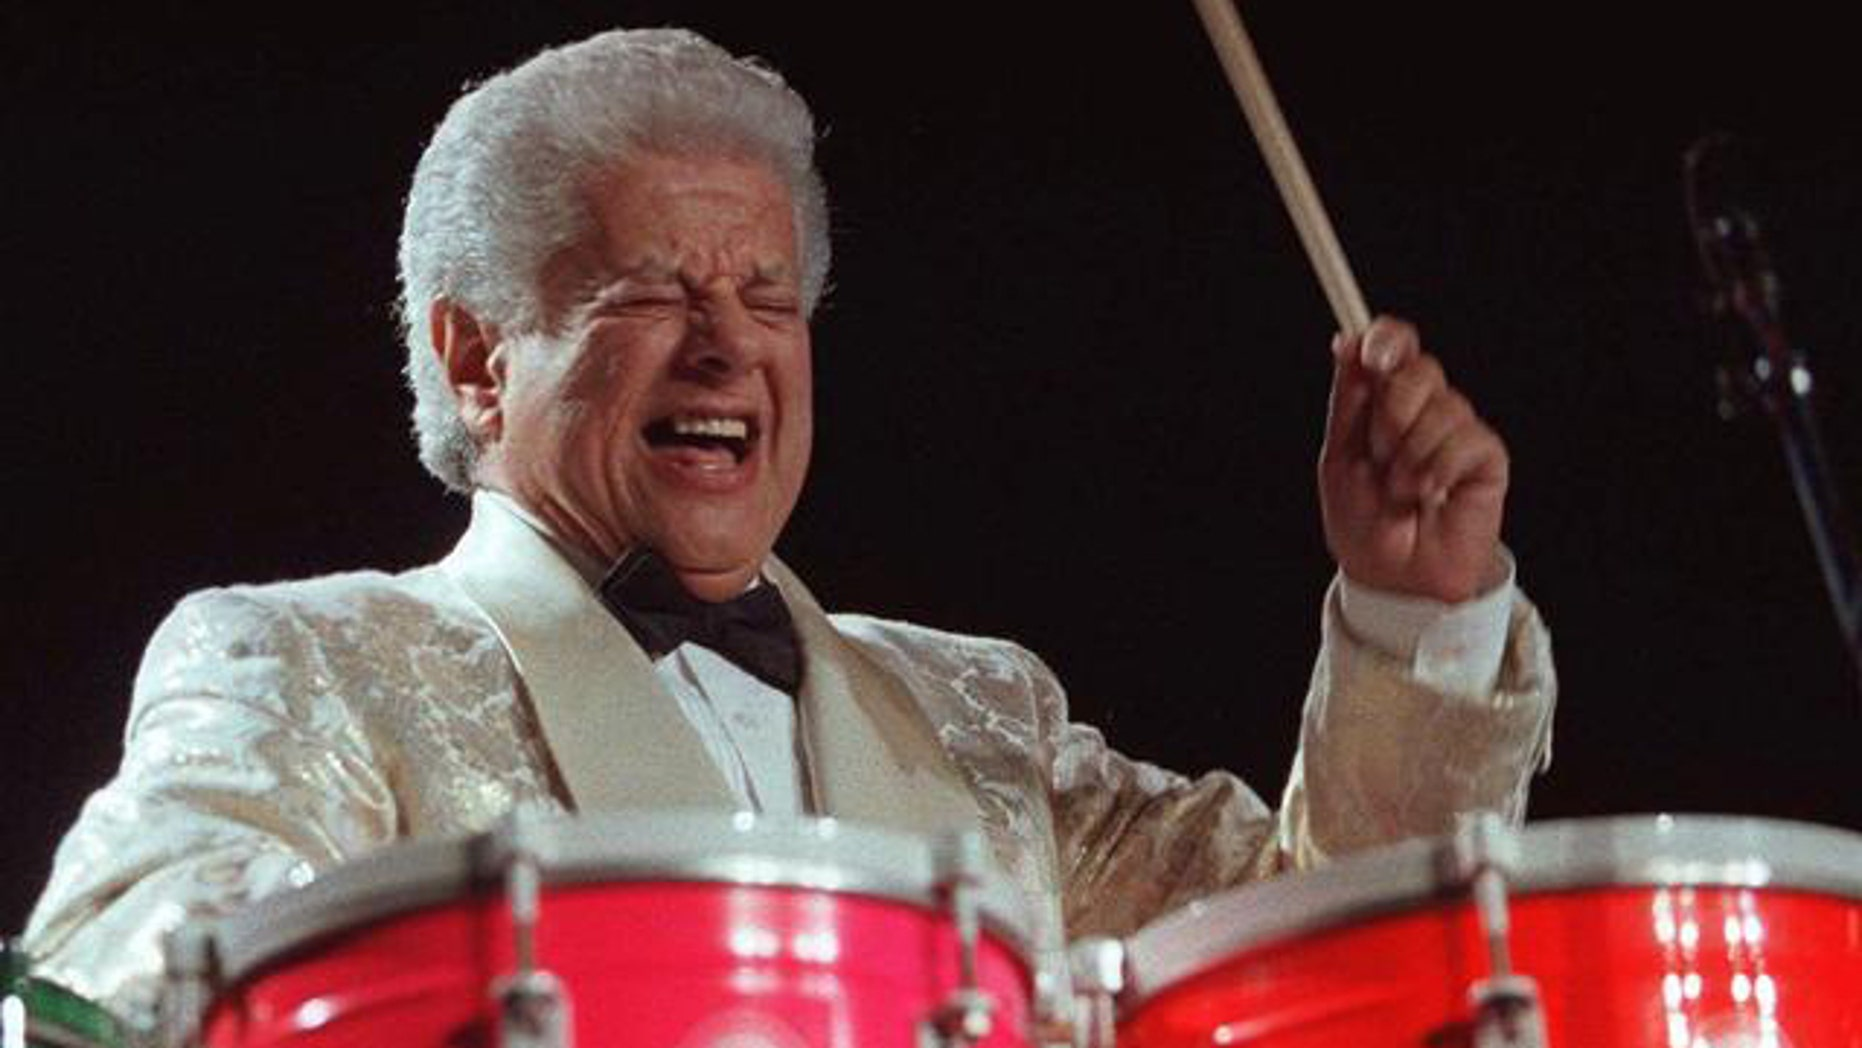 The King of the Timbales, Tito Puente, was an innovative figure in the Latin music scene.